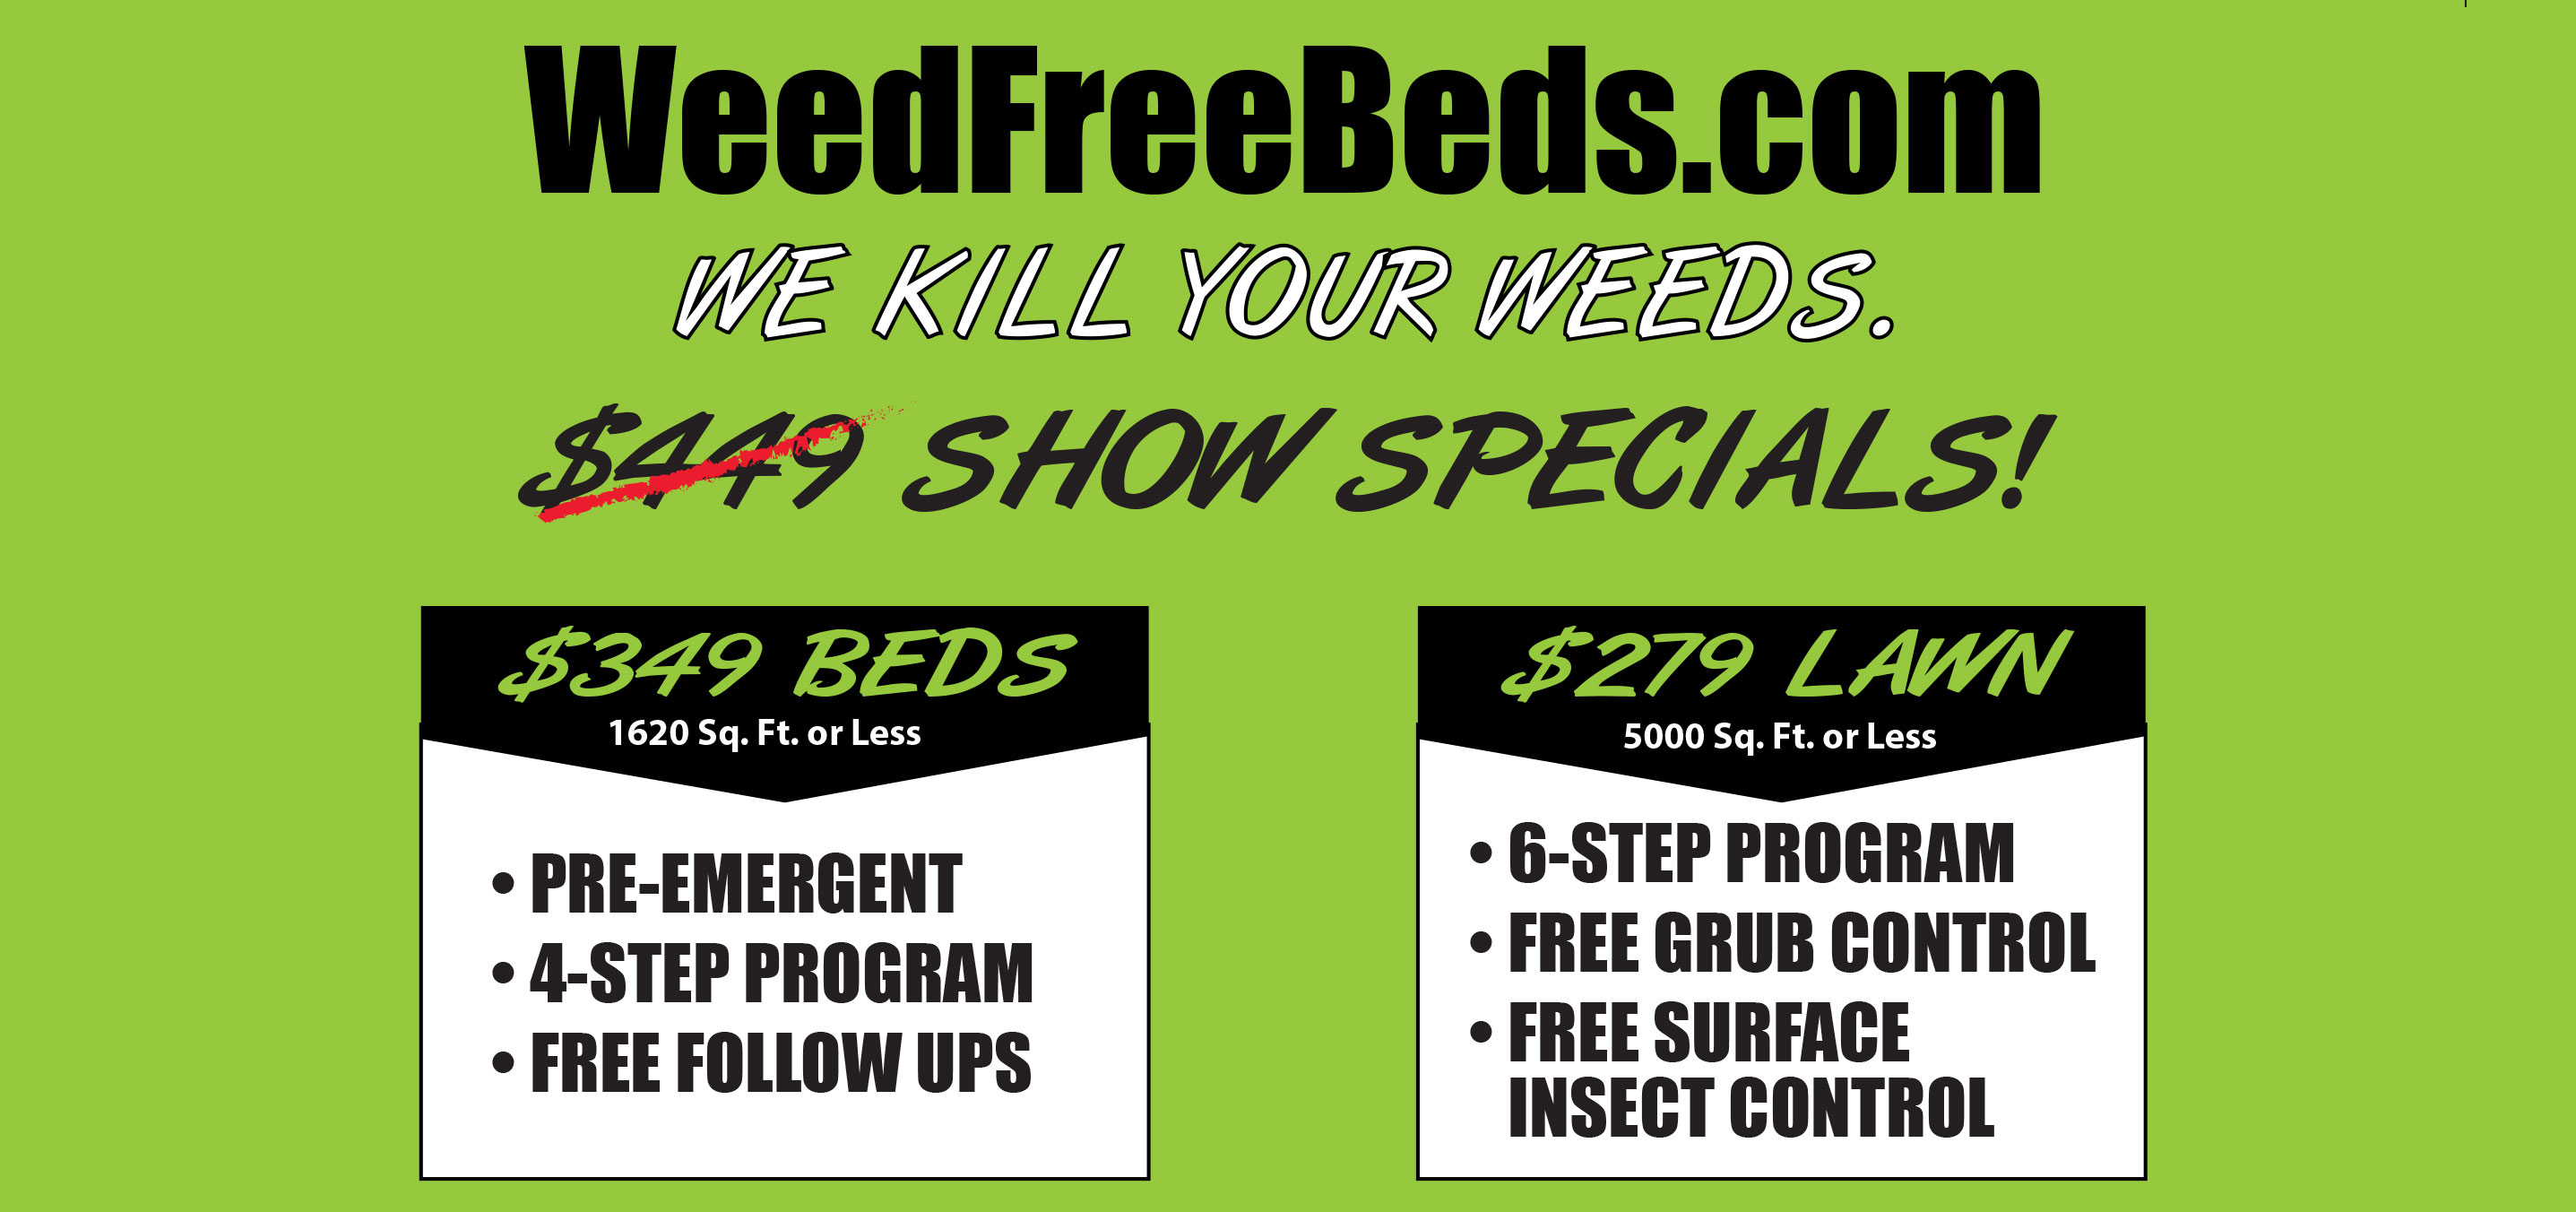 Weed Free Bed Maintenance | Seasonal Yard Work